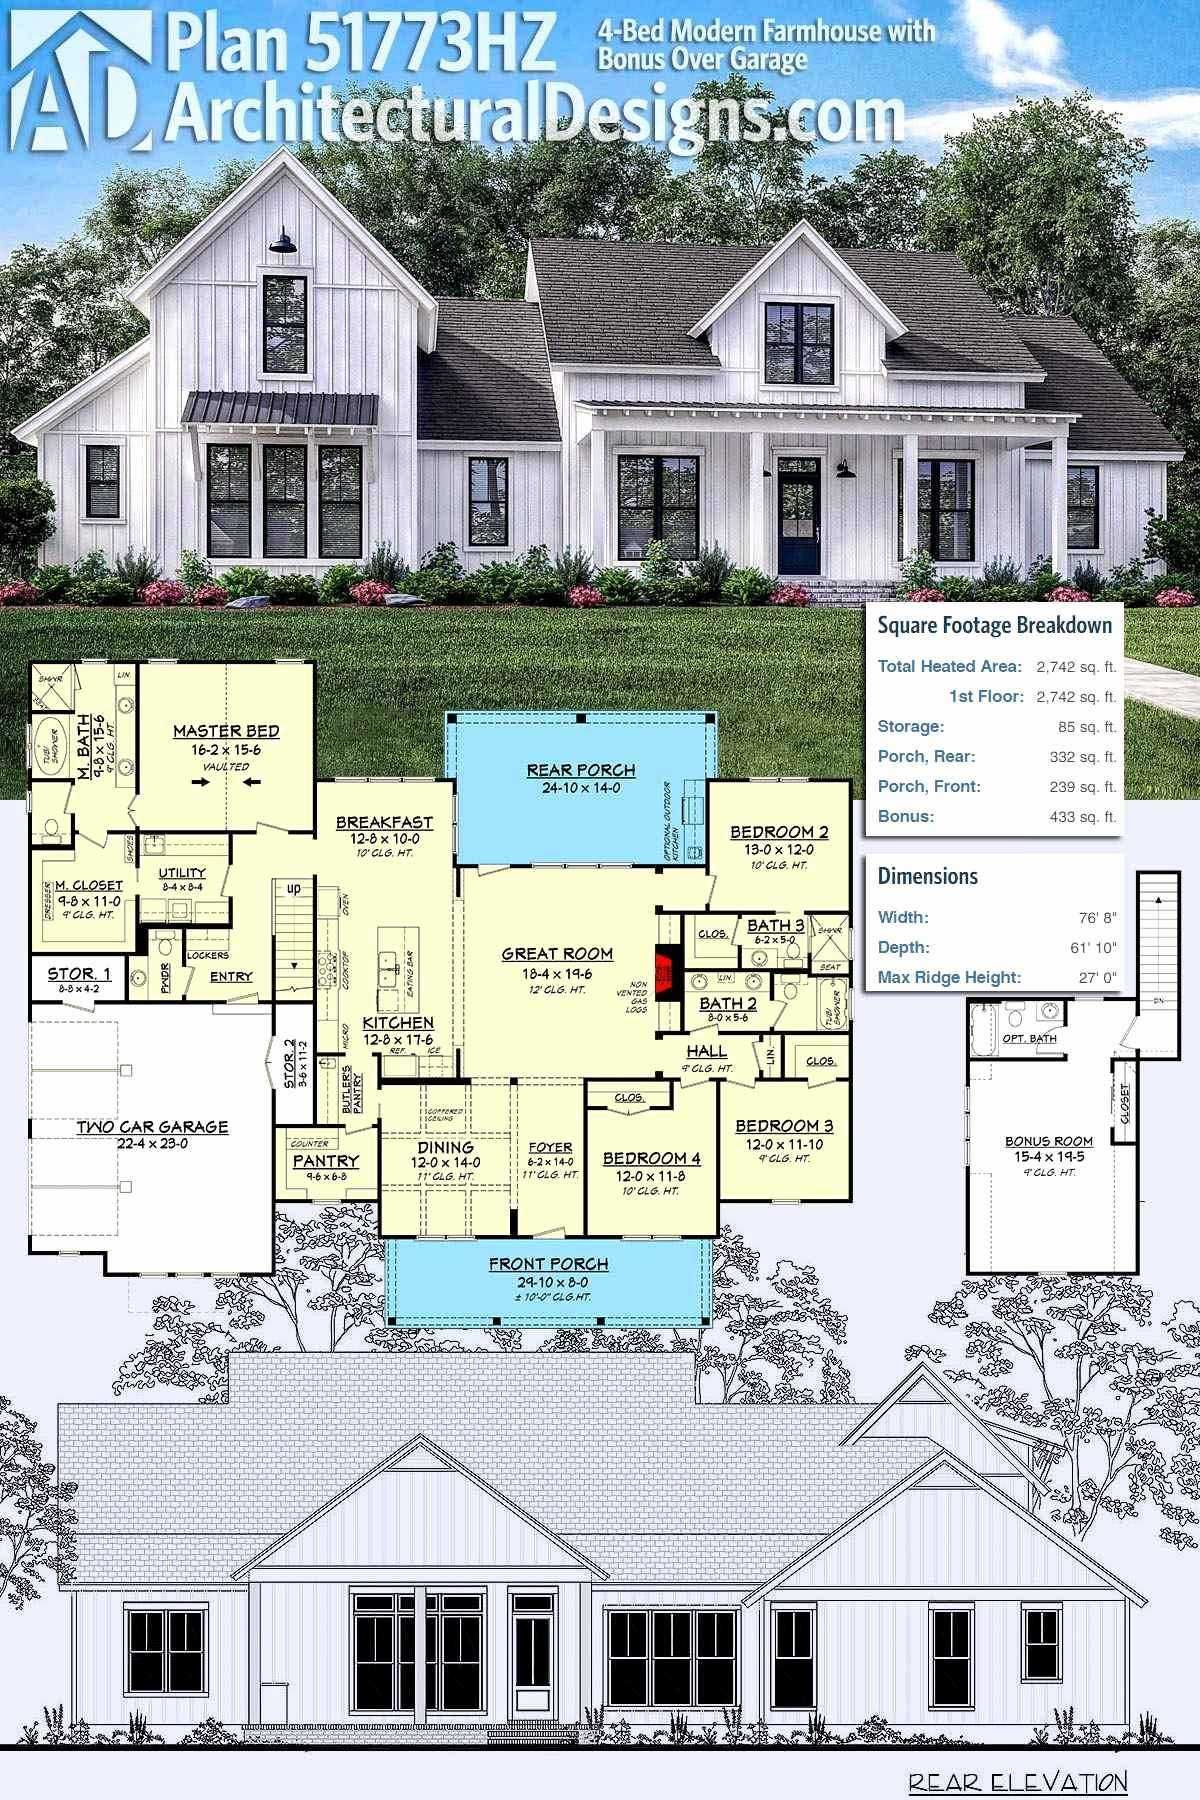 Open Concept Modern Farmhouse Floor Plans Awesome Open Concept Modern Farmhouse Floor Modern Farmhouse Plans Farmhouse Floor Plans Modern Farmhouse Floorplan